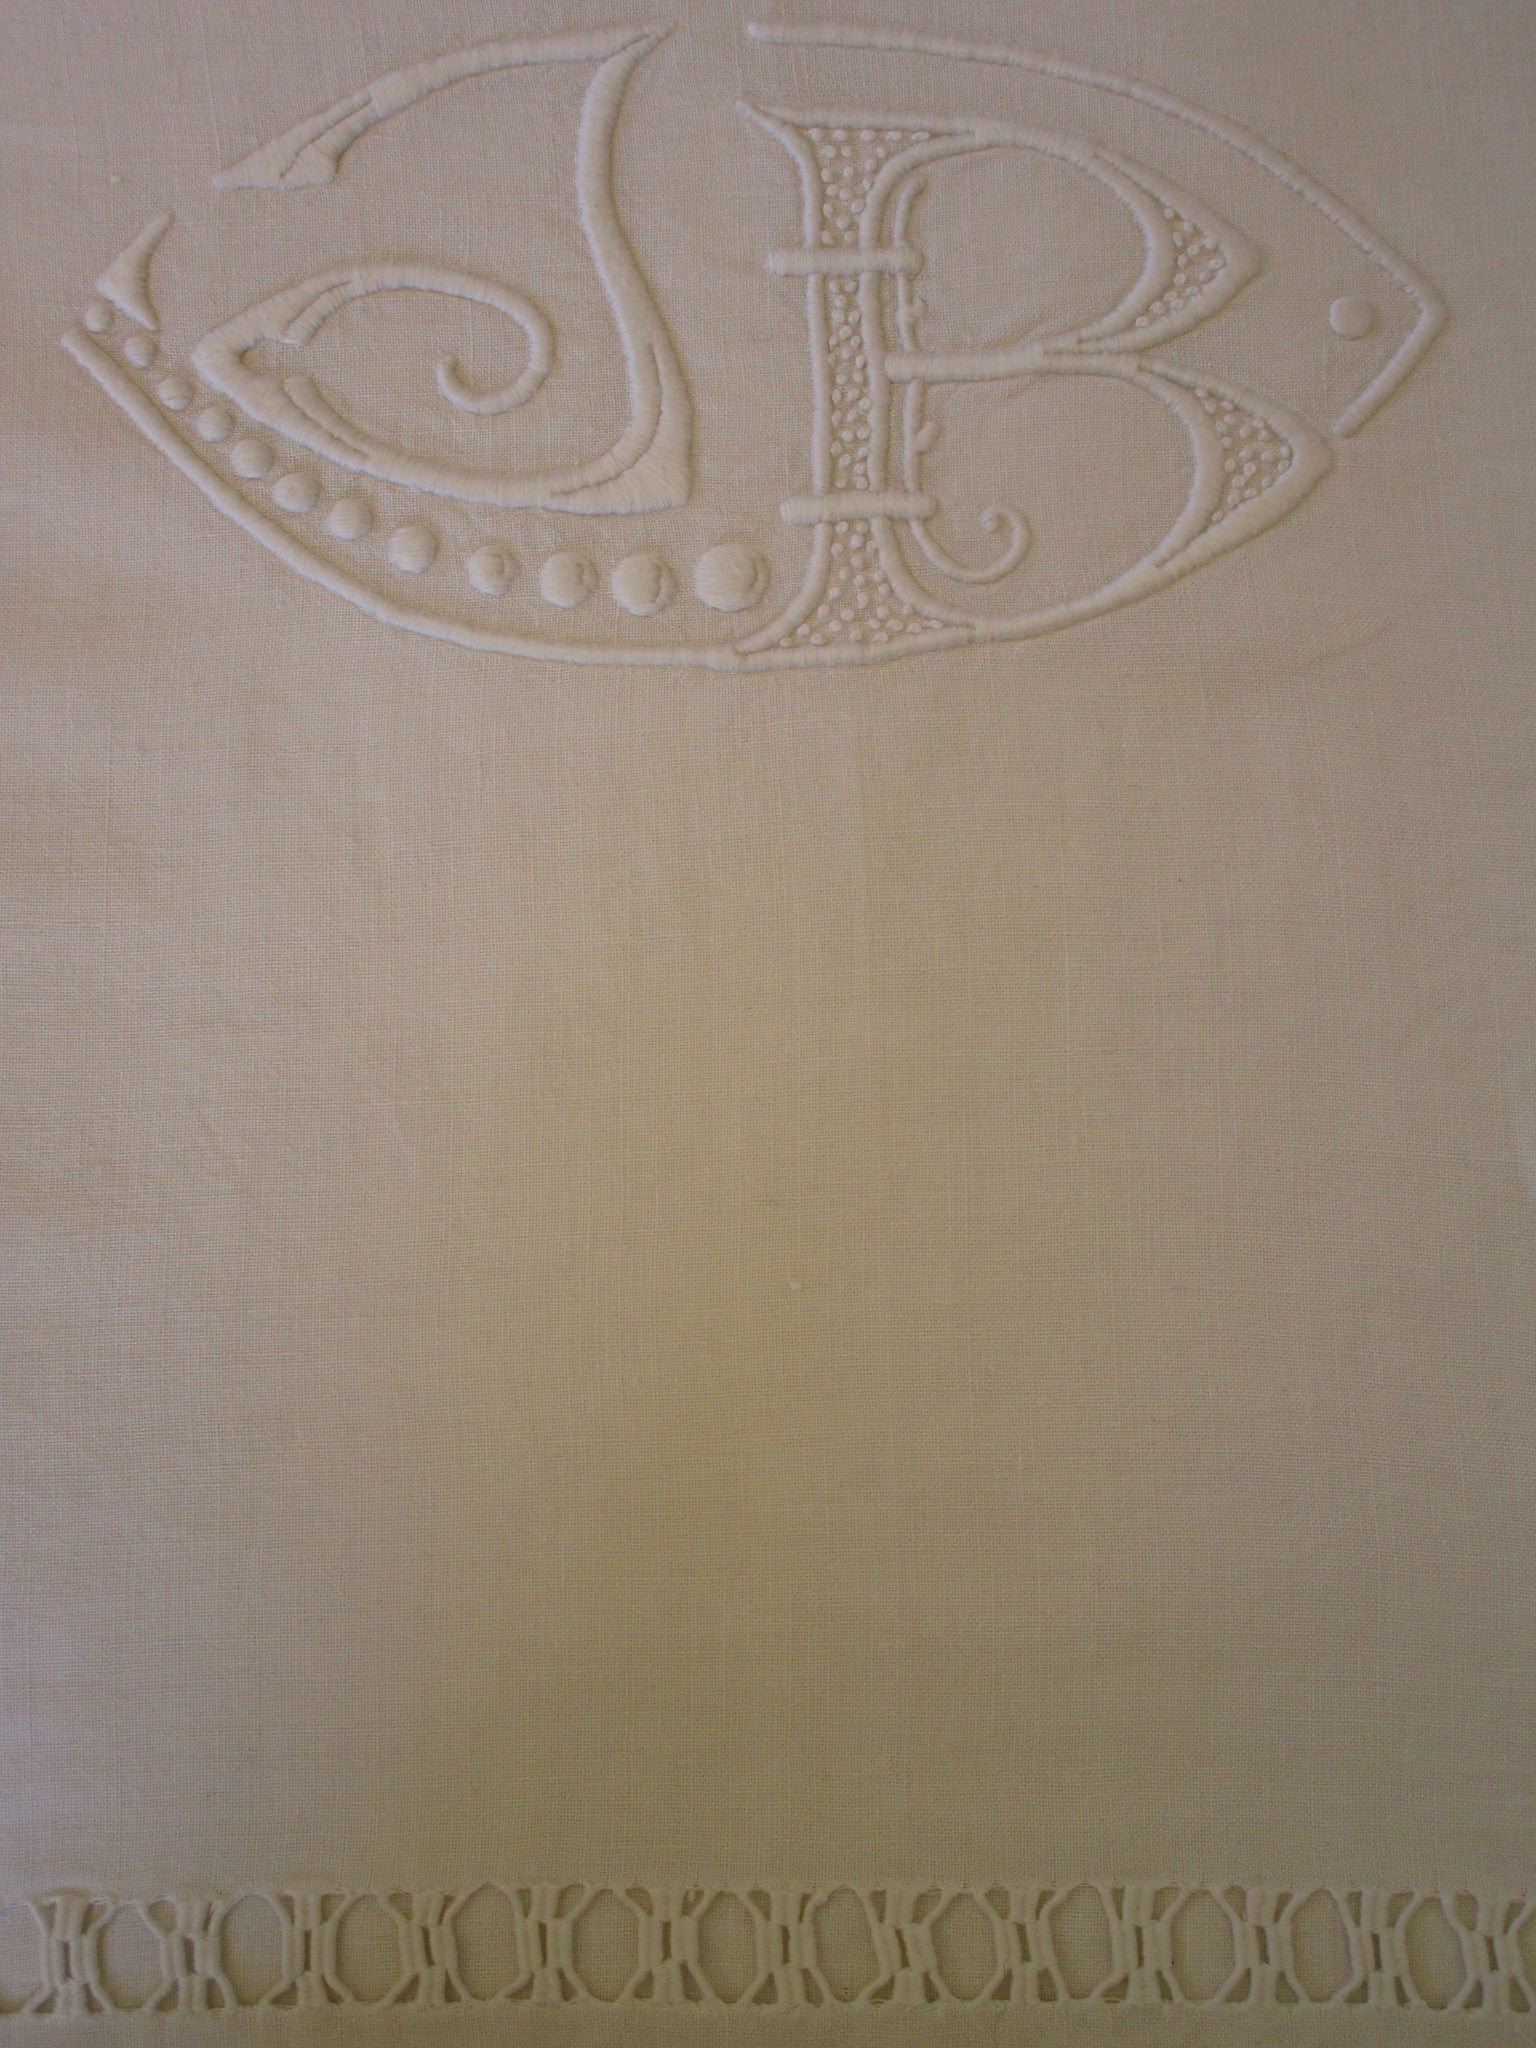 antique french linen bed sheet jb monogram